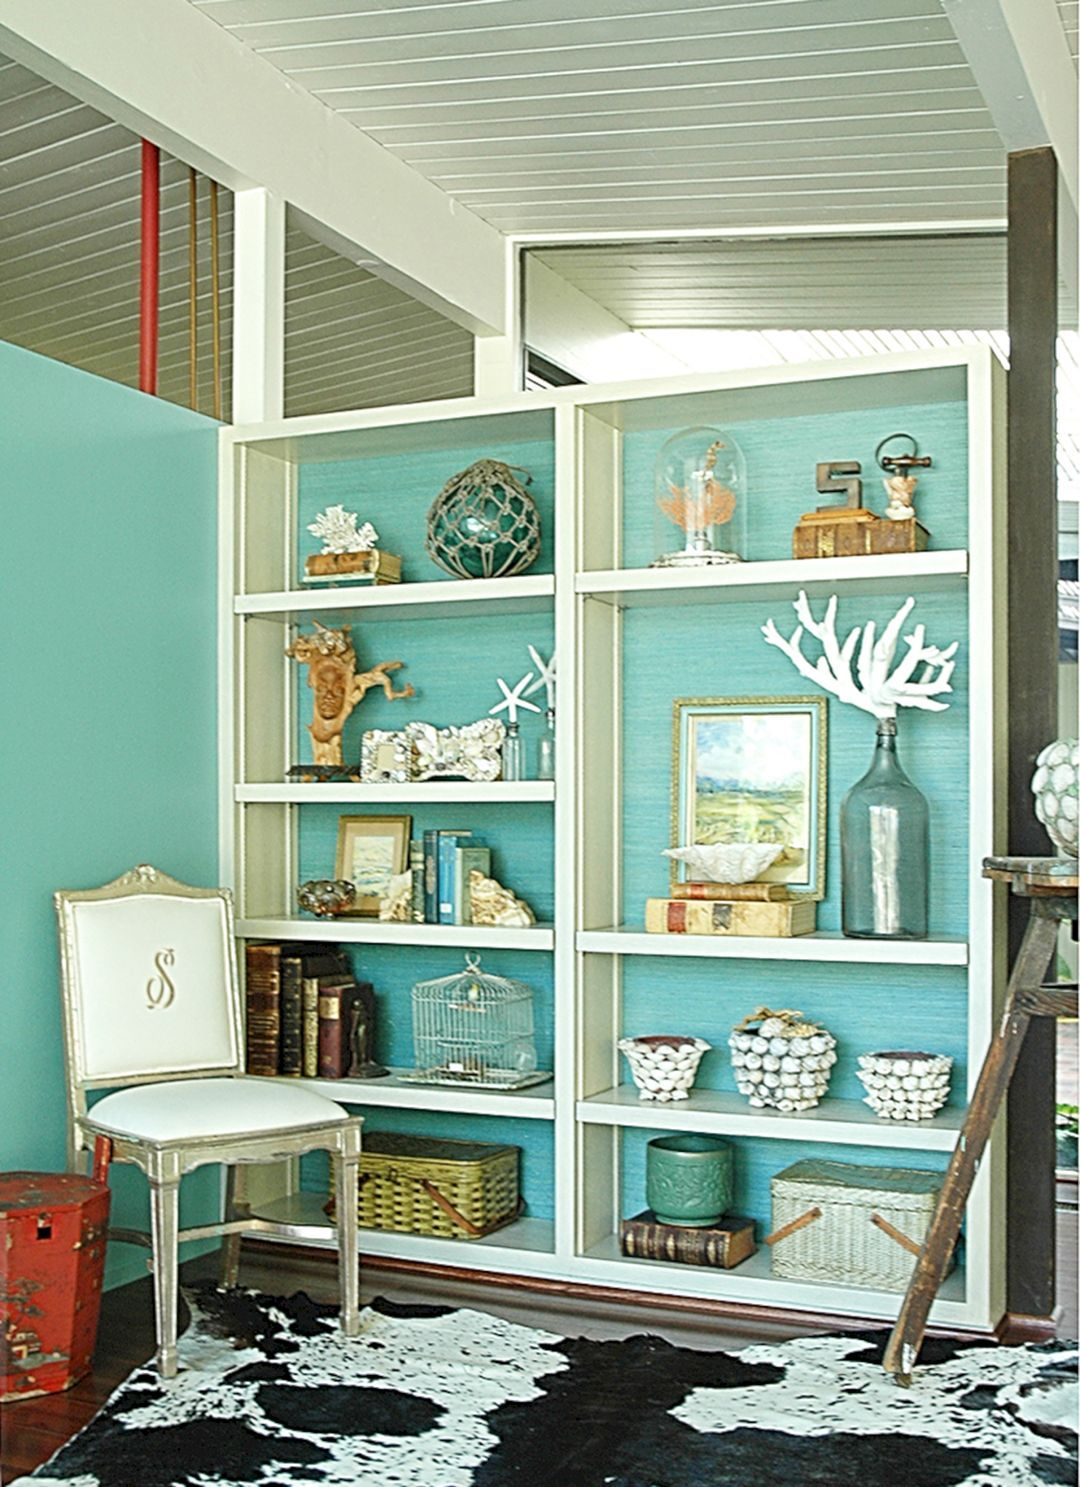 15 Best DIY Shelving Ideas as Extra Storage For Awesome ...